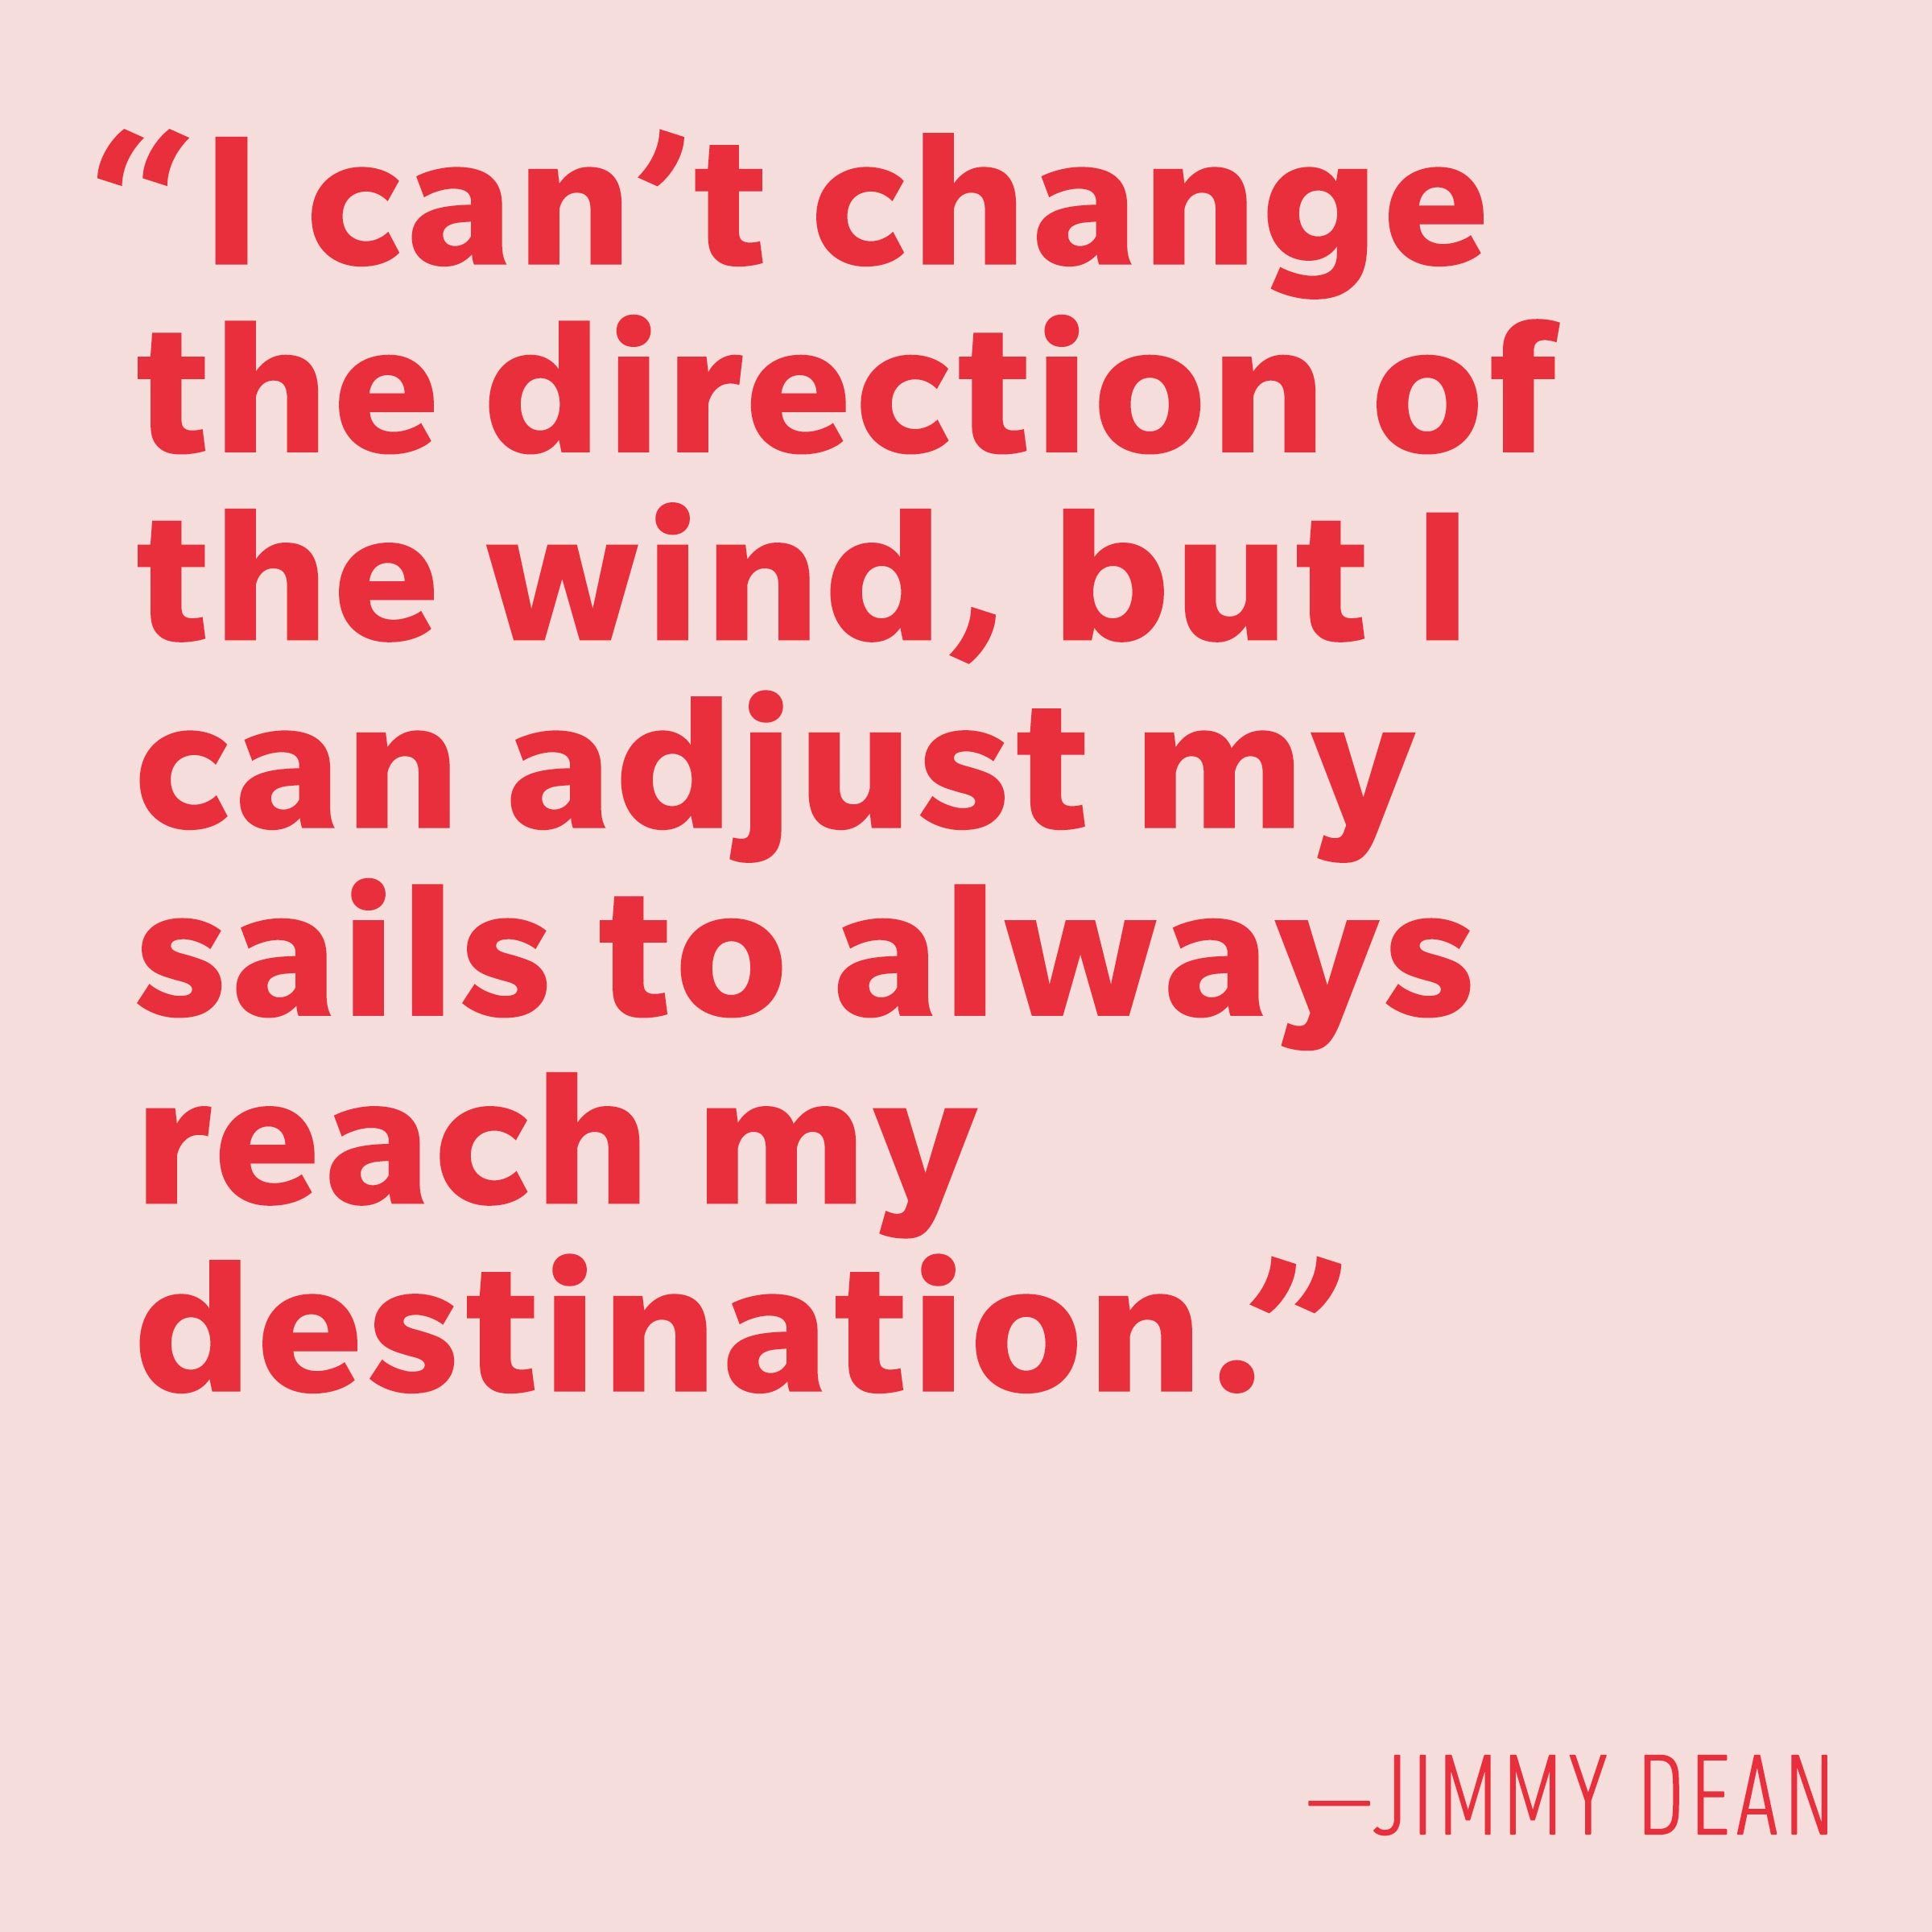 Motivational quotes - Jimmy Dean